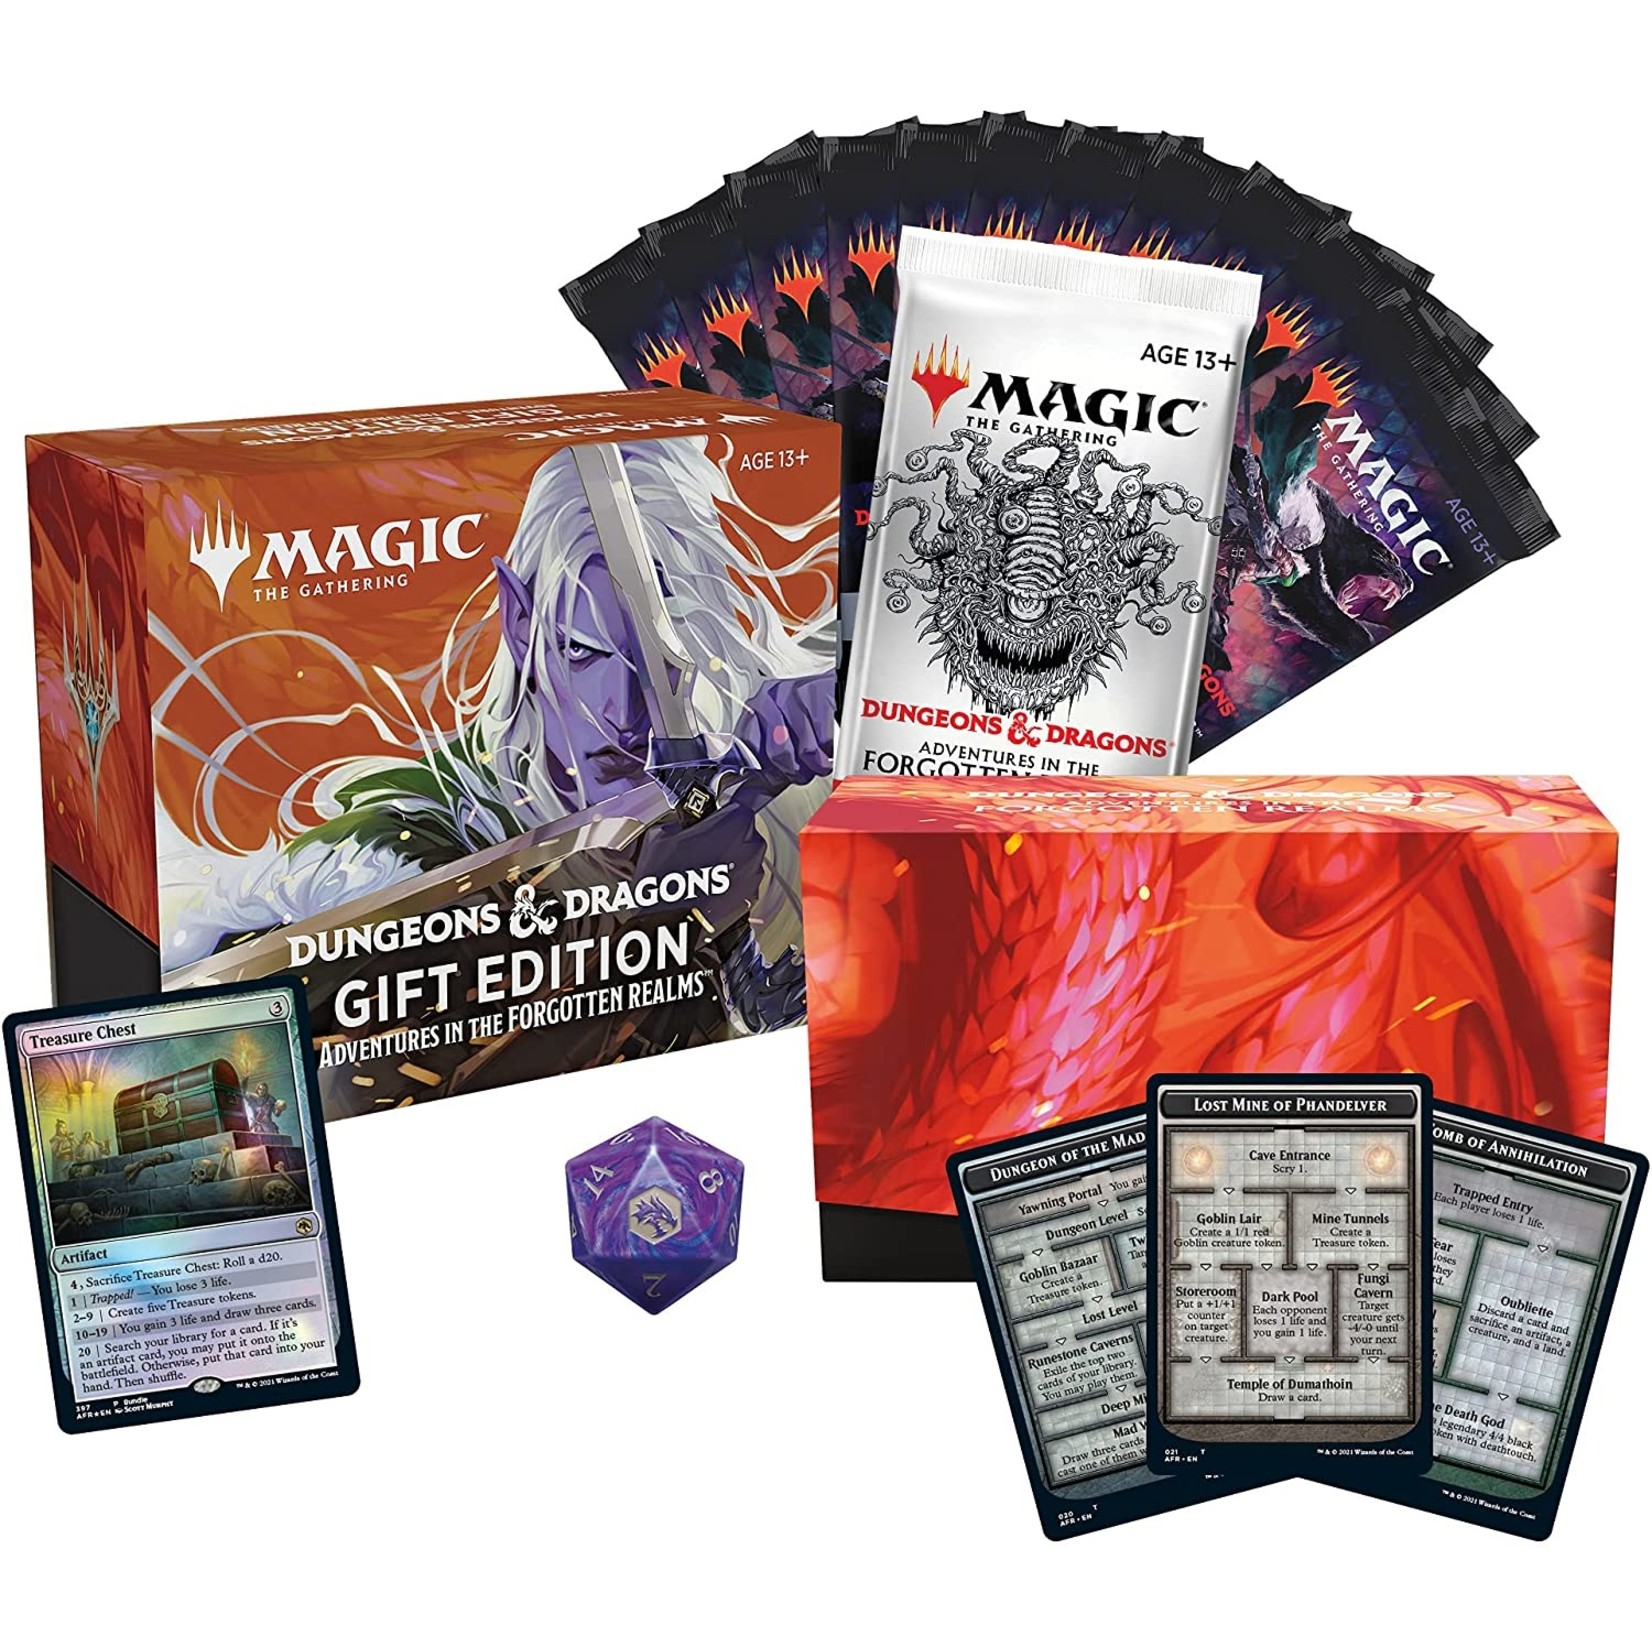 Wizards of the Coast Magic the Gathering: Adventures in the Forgotten Realms - Gift Edition Bundle